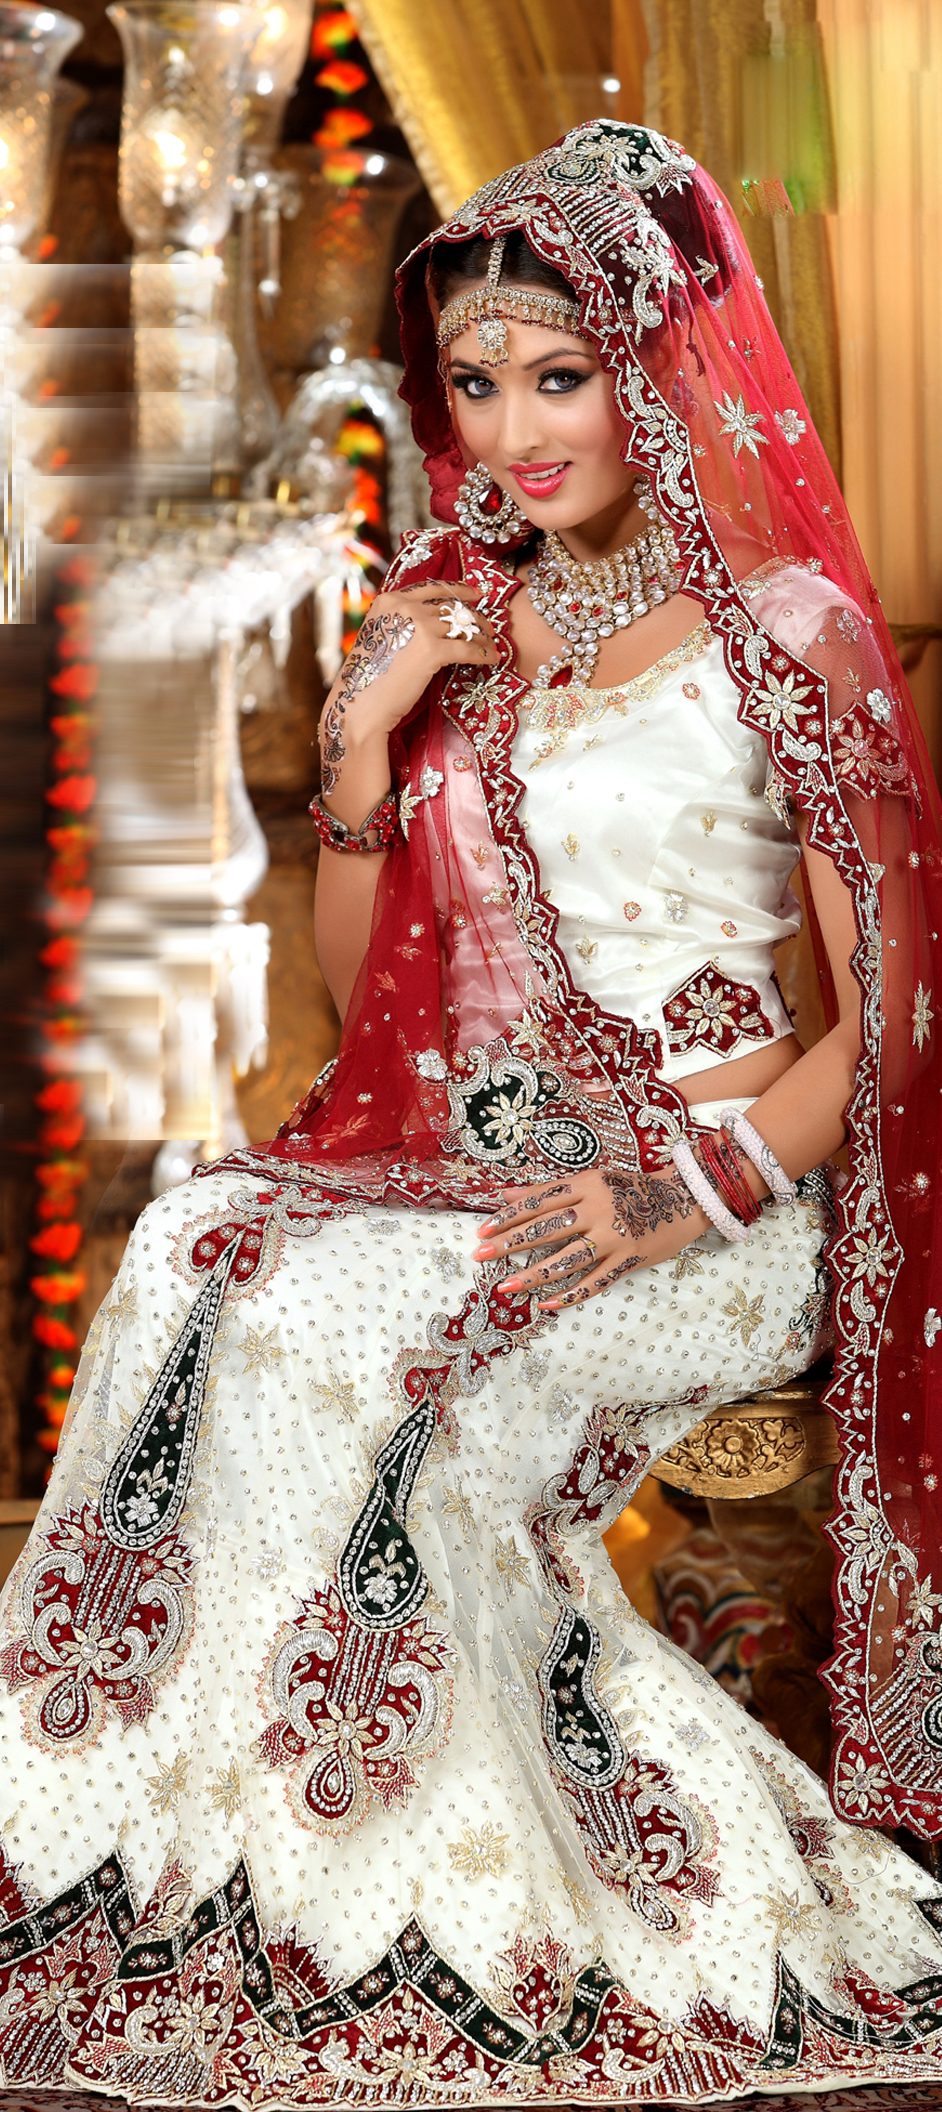 82517: White and Off White color family Wedding Lehnga.